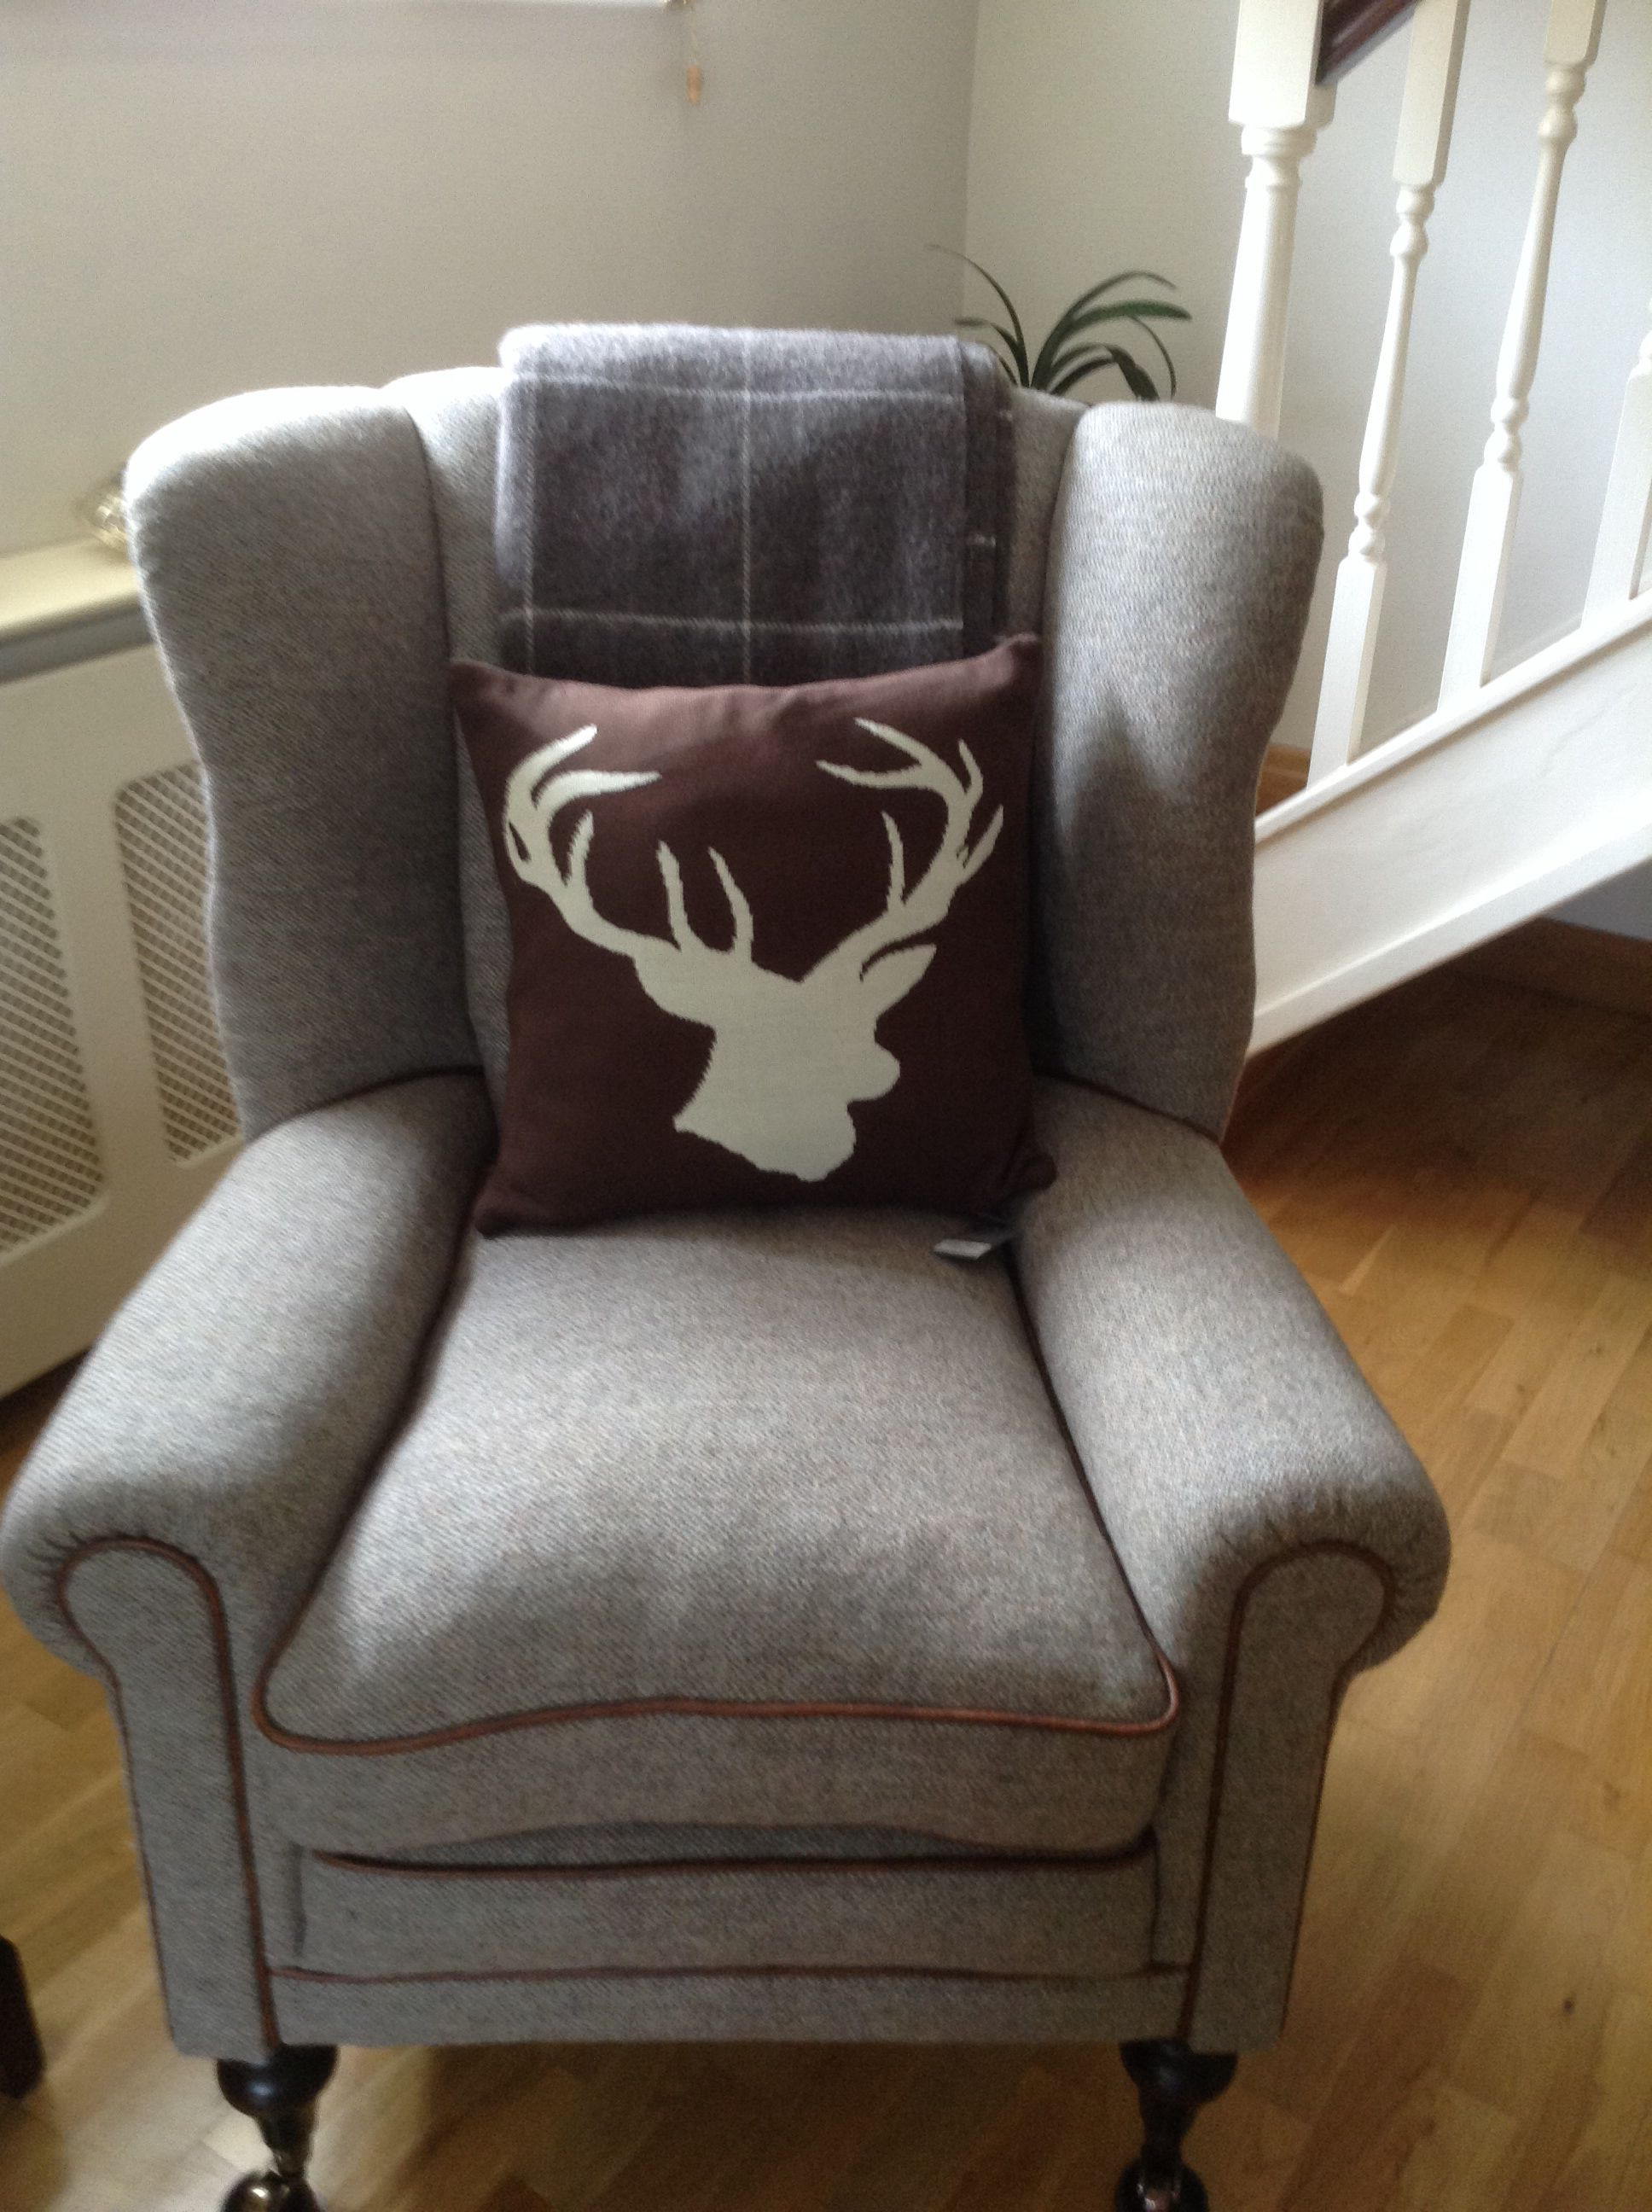 Meubles Fraser Furniture Harris Tweed Armchair With Stag Cushion From House Of Fraser